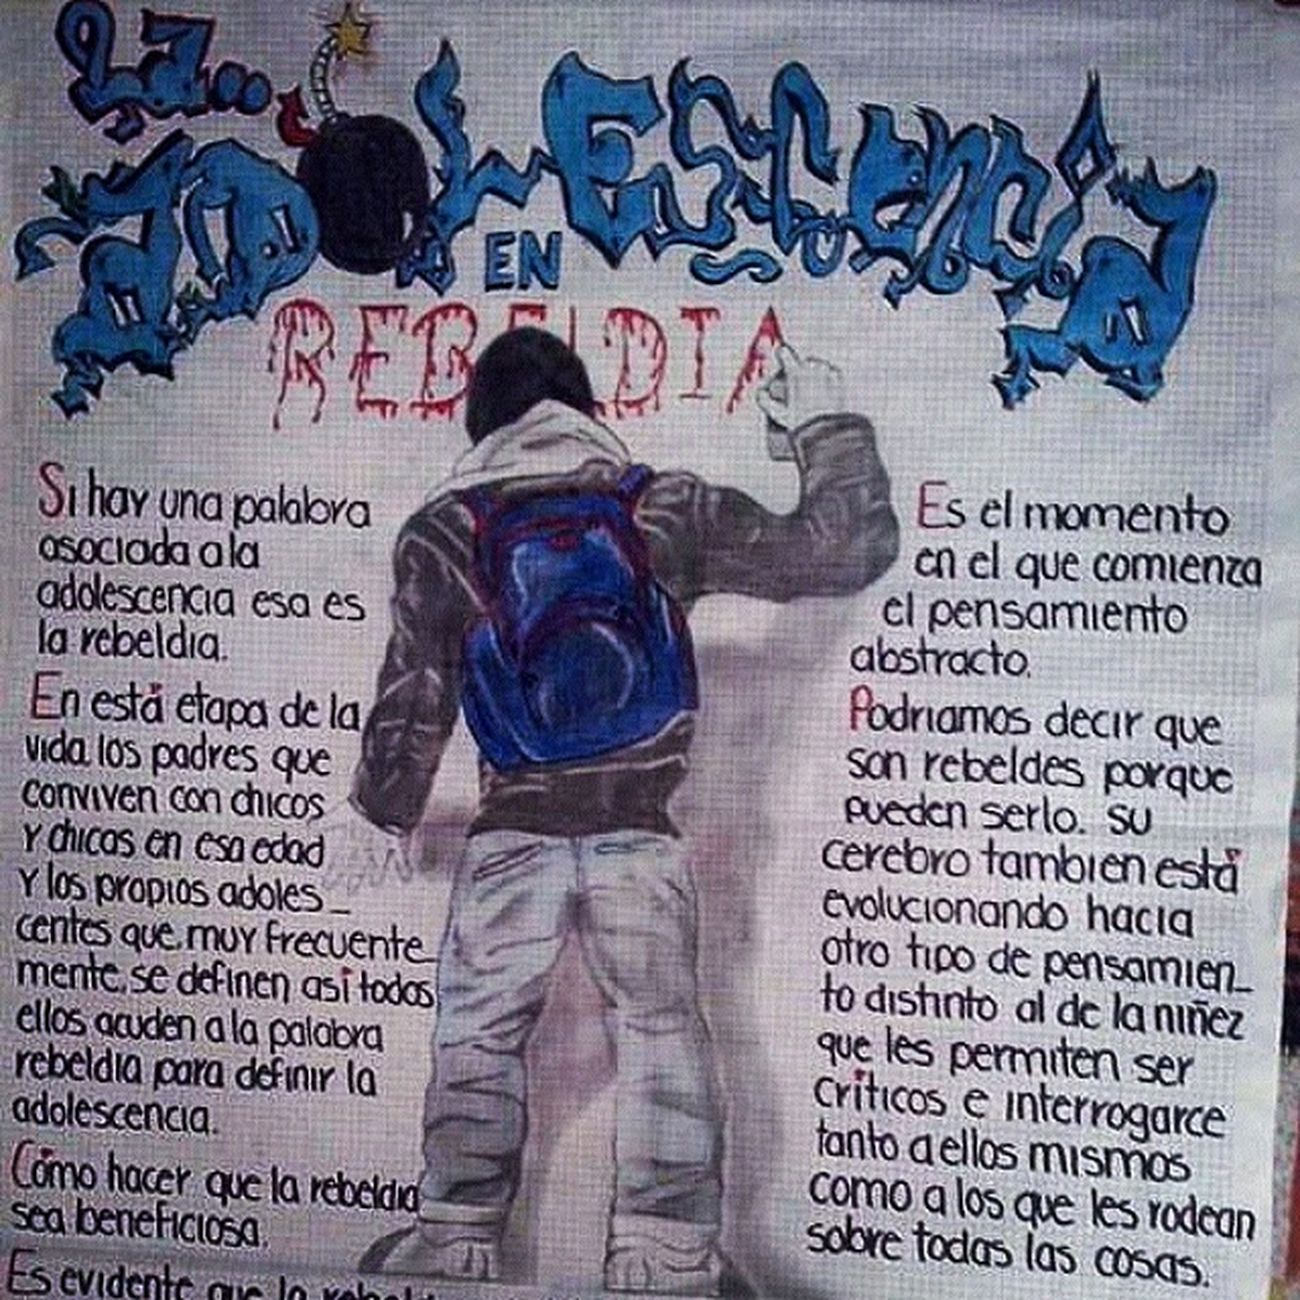 La Mente Detras Del Lapiz Graffiti Art, Drawing, Creativity Artistic ArtWork Arte Draw Dibujo Dibujo A Lapiz Drawingtime